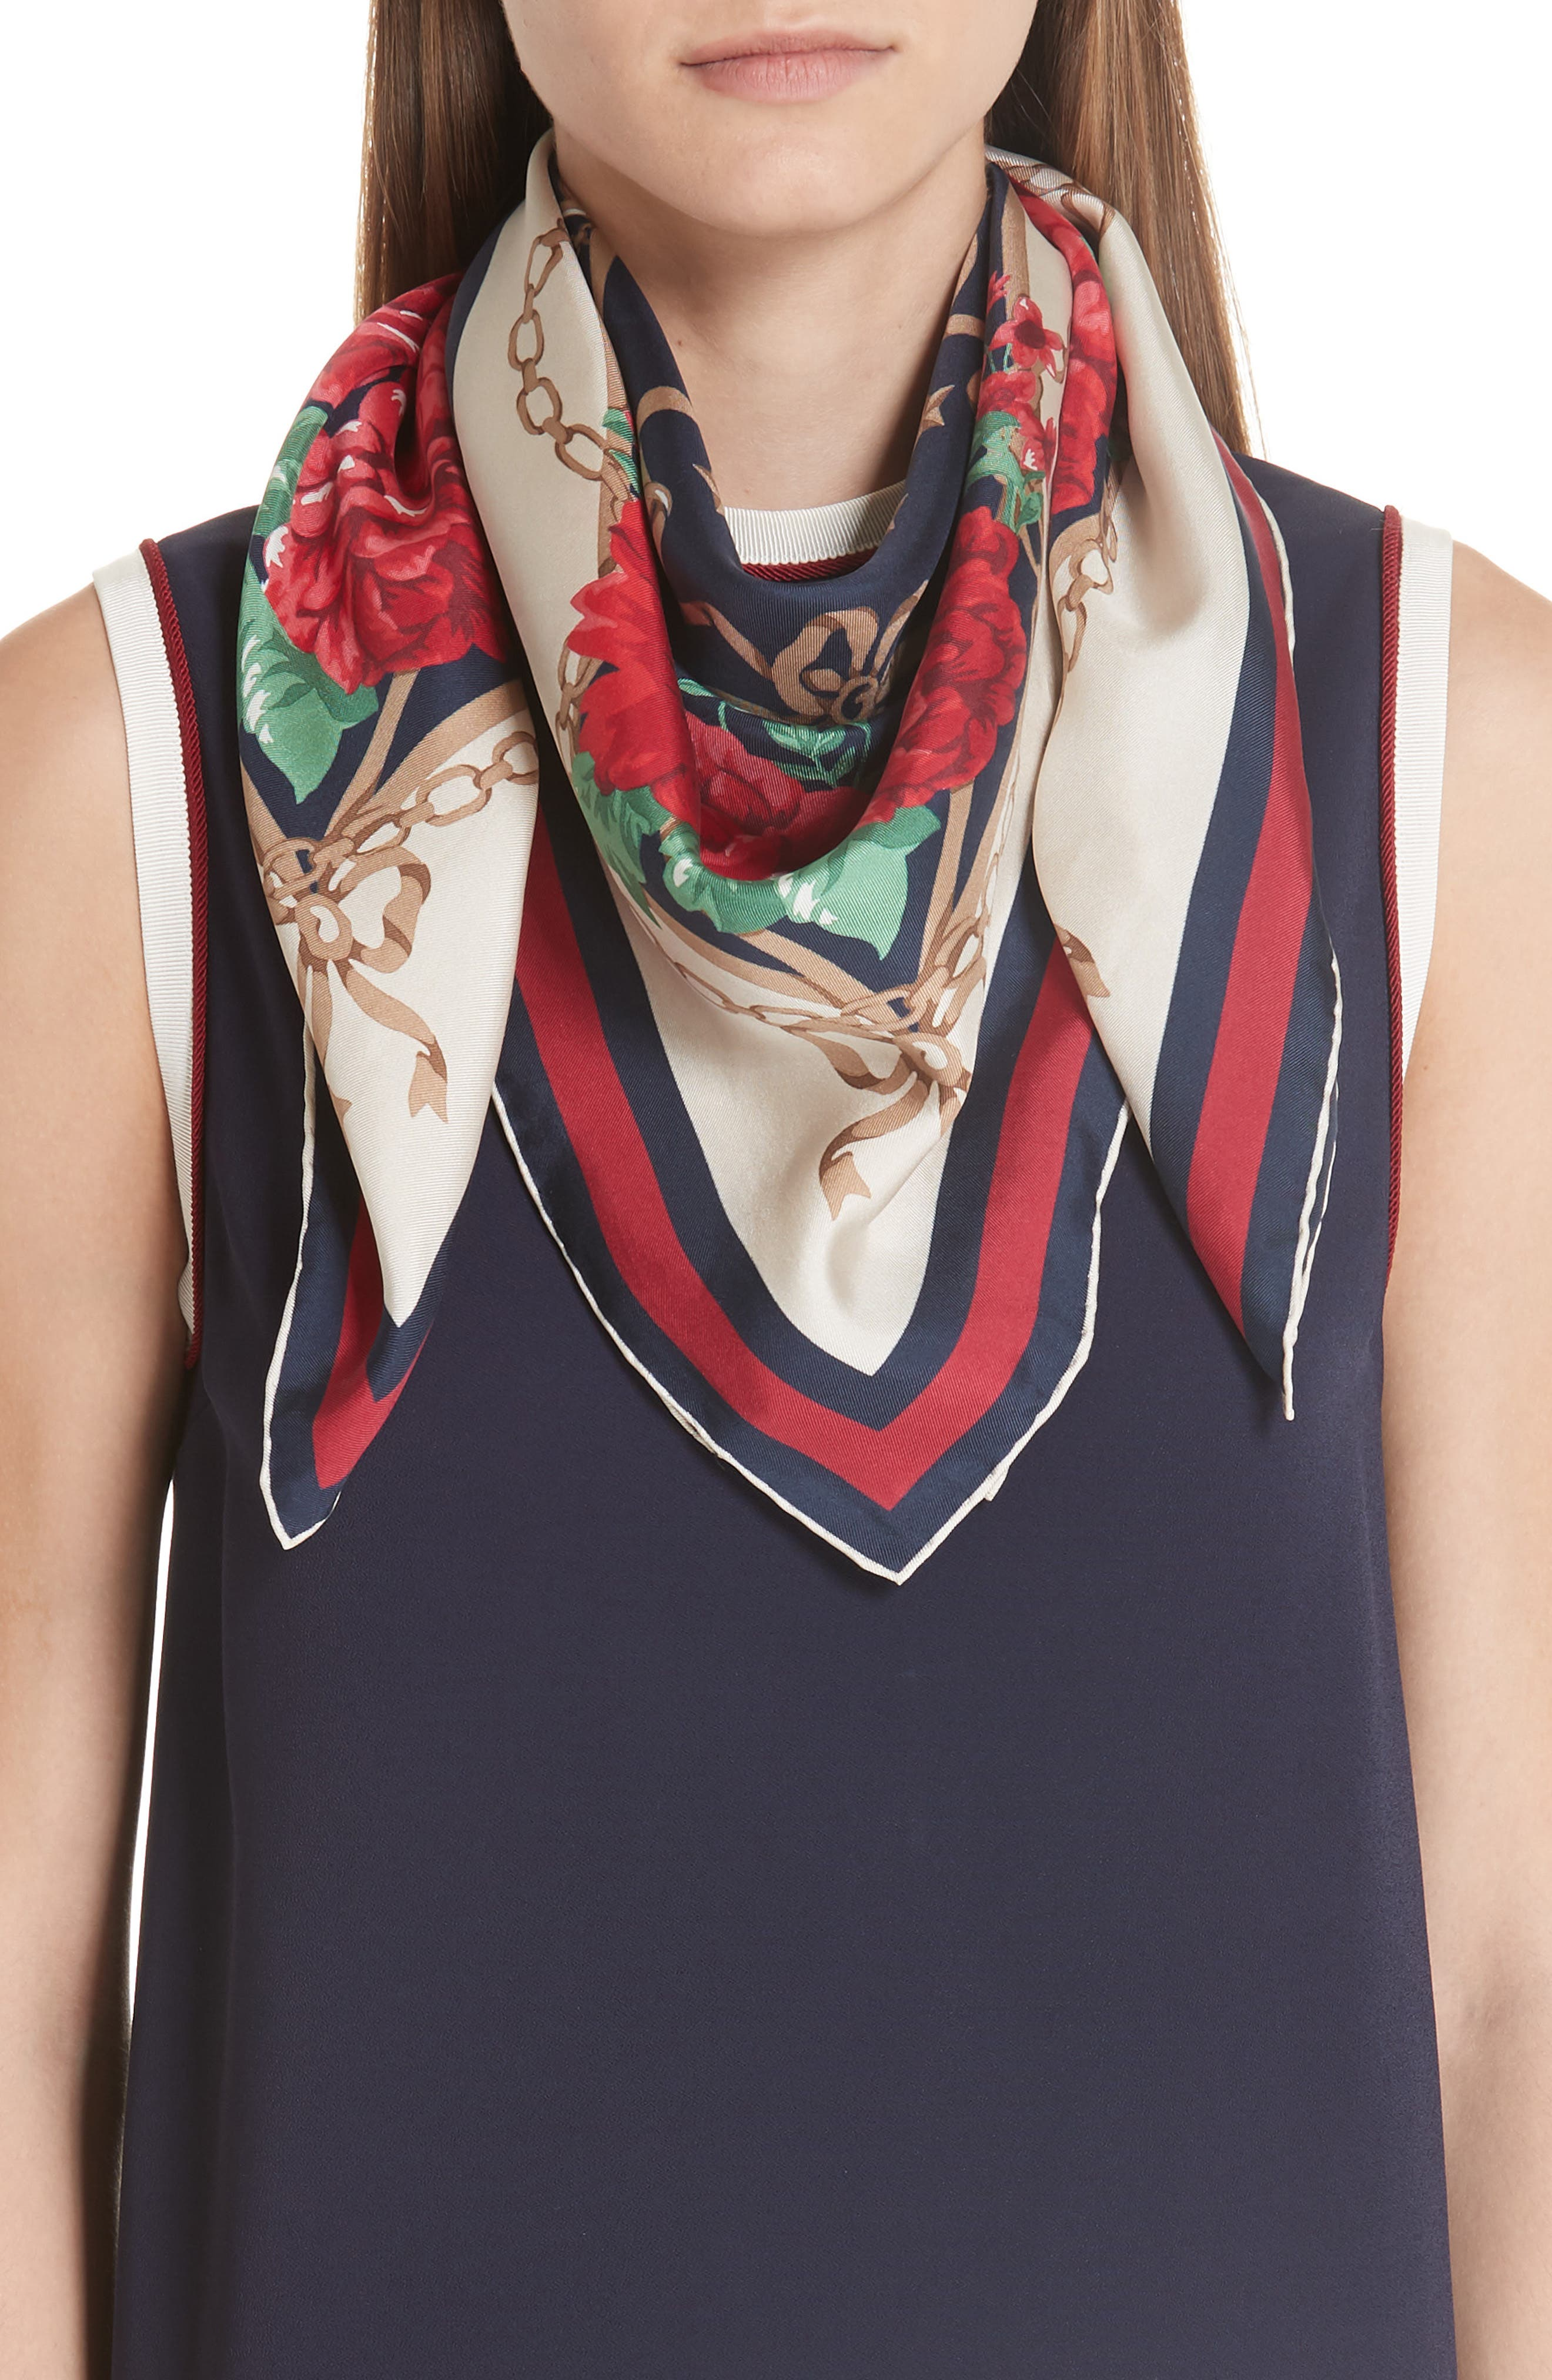 Rose Chain Foulard Silk Twill Scarf,                             Main thumbnail 1, color,                             MIGHTNIGHT BLUE/ RED